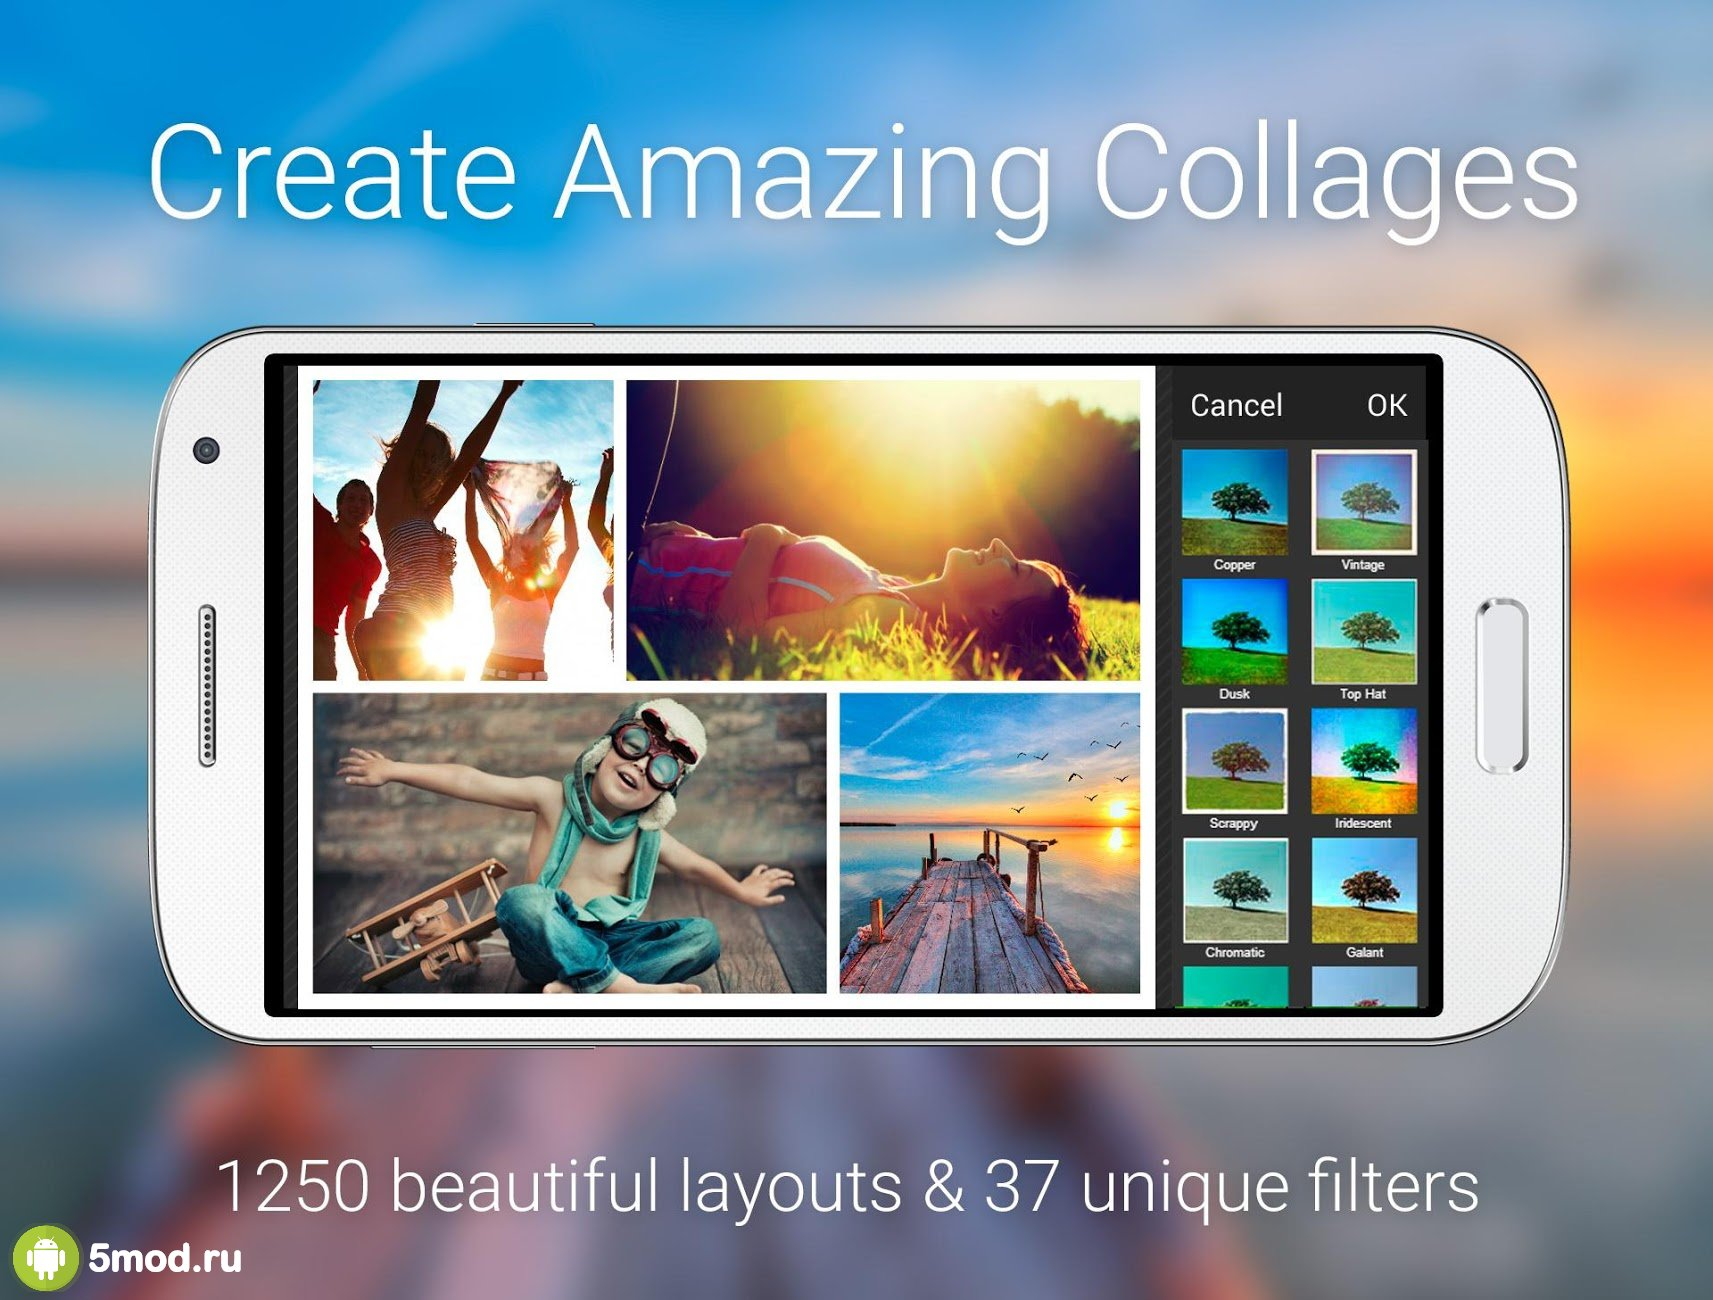 piZap Photo Editor, Design Tool, Collages & amp; Memes